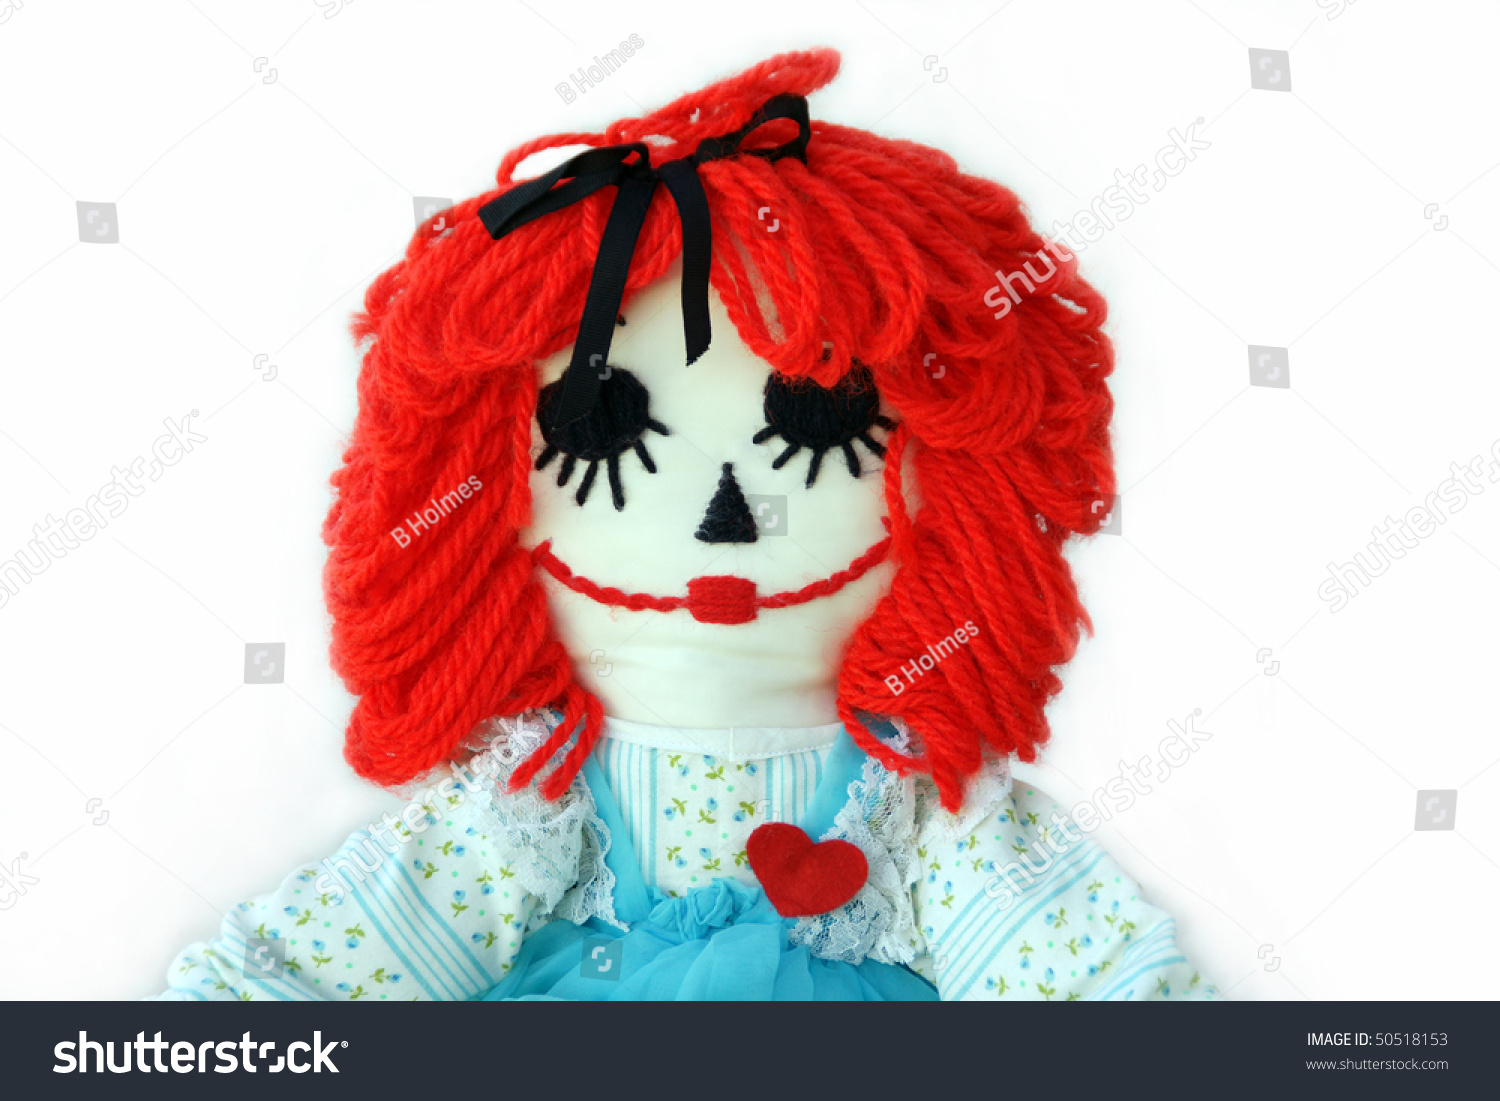 old time rag doll stock photo 50518153 shutterstock